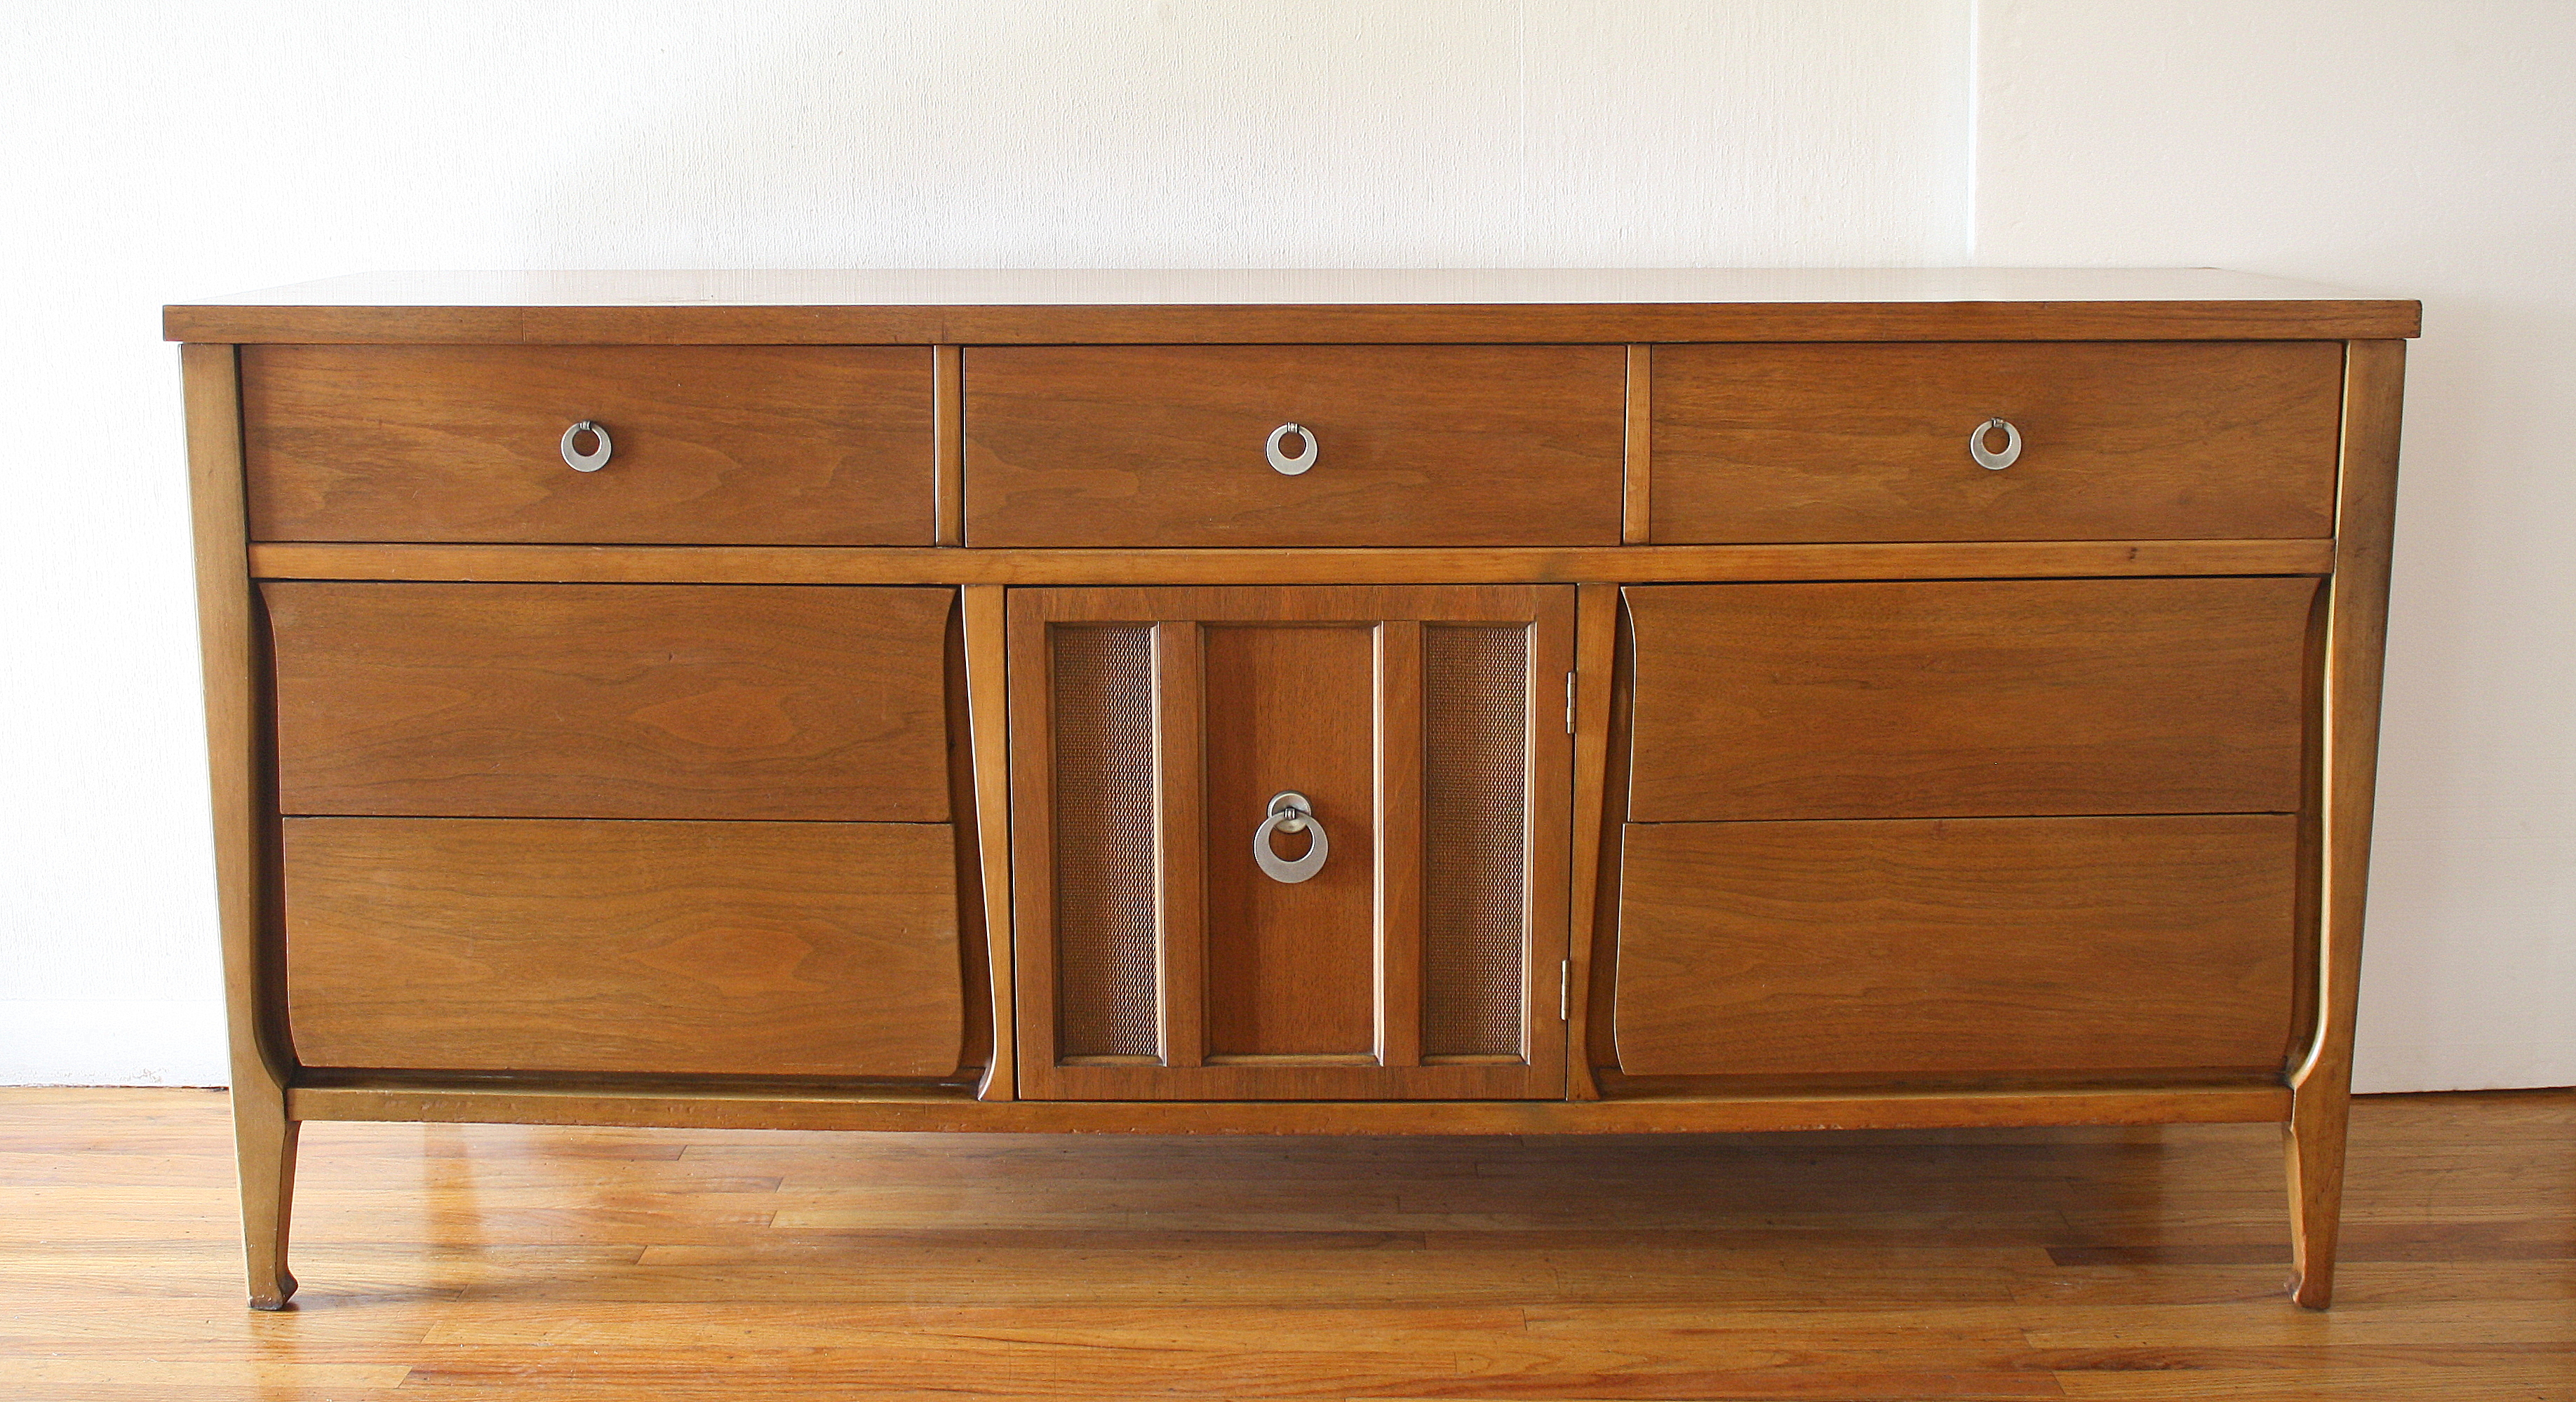 mcm credenza with ring pulls 1.JPG